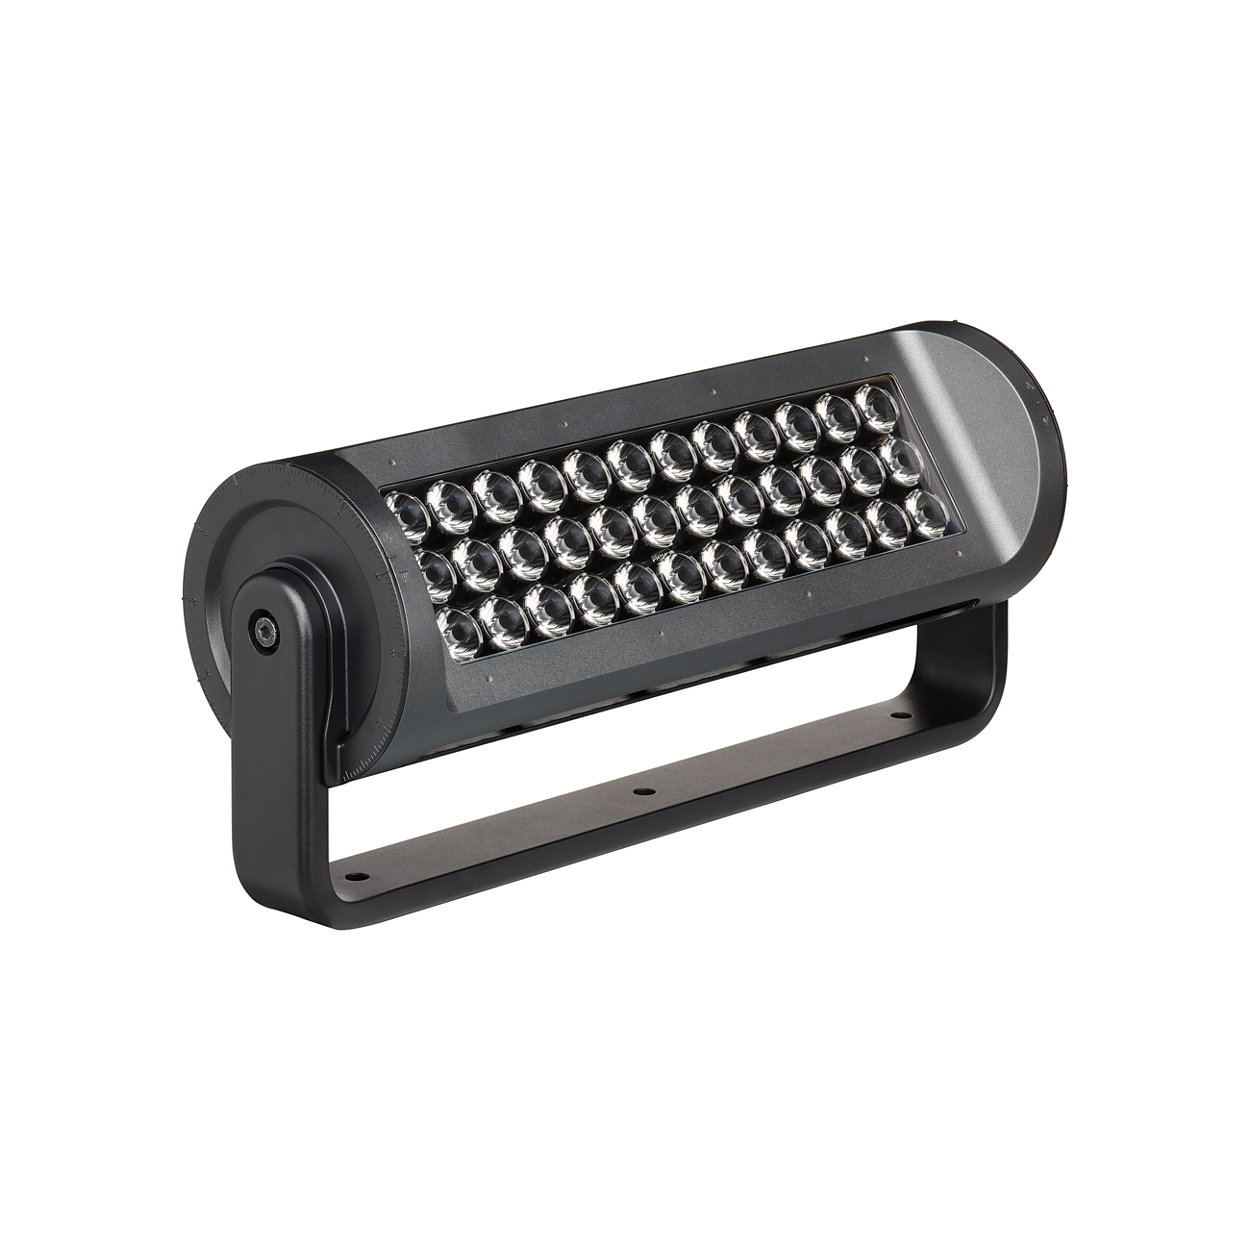 A high-performance long-throw exterior LED luminaire with essential white light